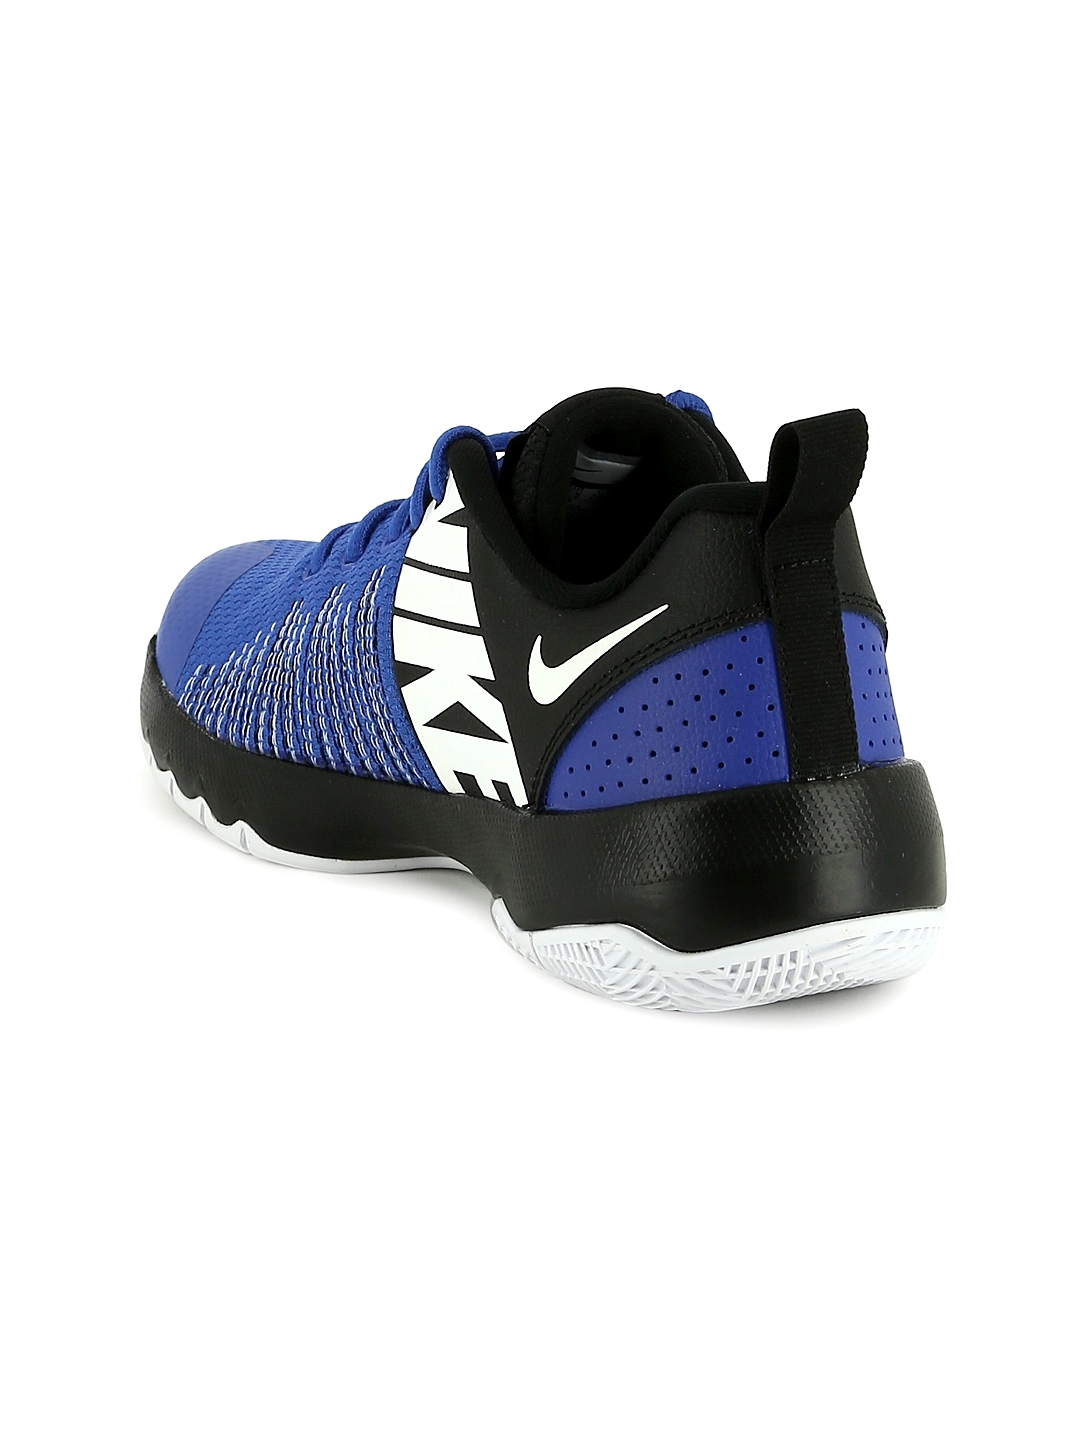 timeless design c4ada 11e7f Nike Boys Blue   Black TEAM HUSTLE QUICK Basketball Shoes